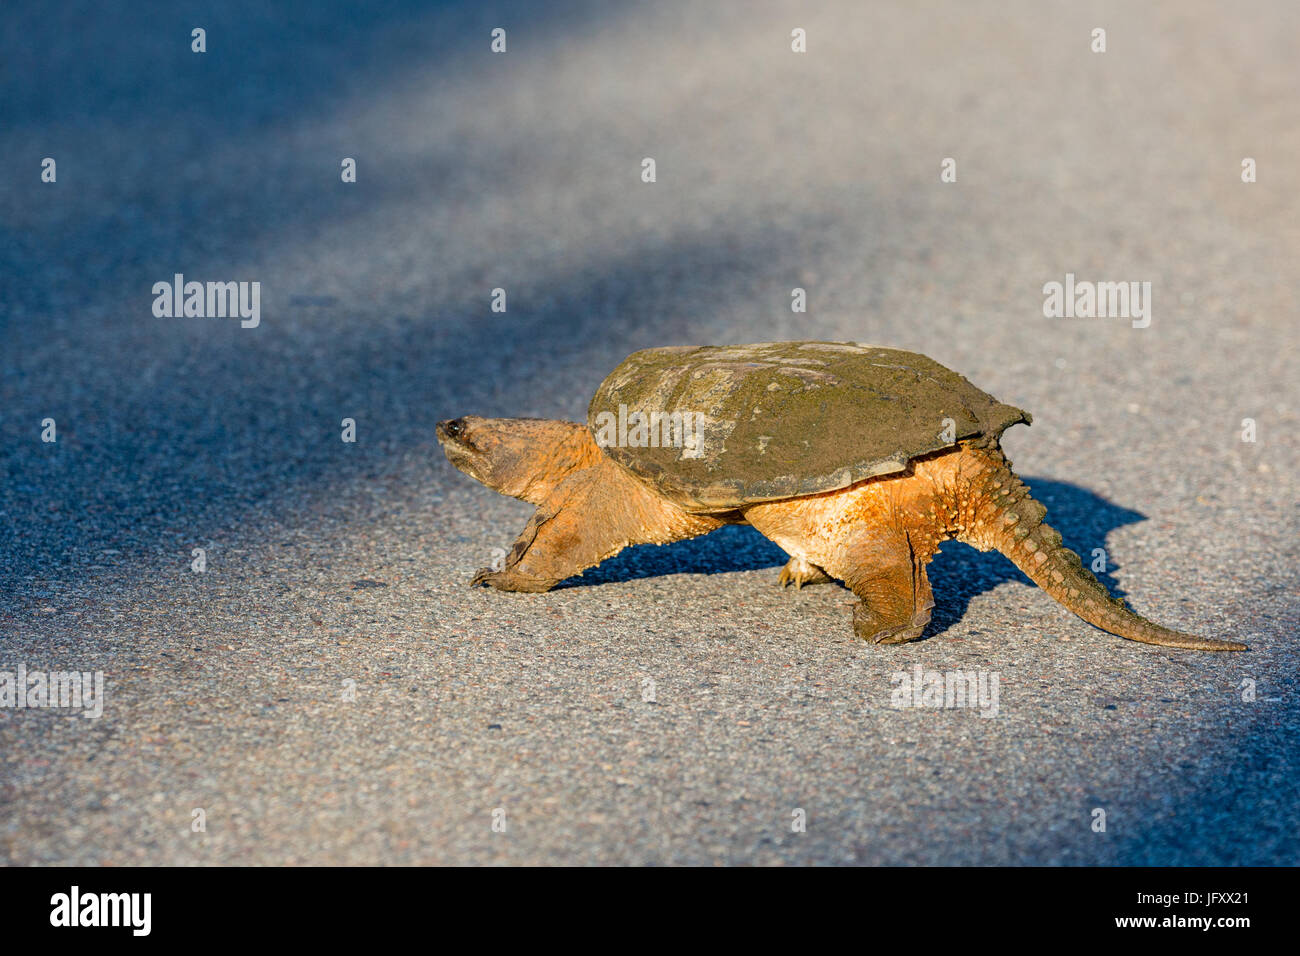 Snapping Turtle (Chelydra serpentina) crossing a blacktop road in Wisconsin during the summer Stock Photo